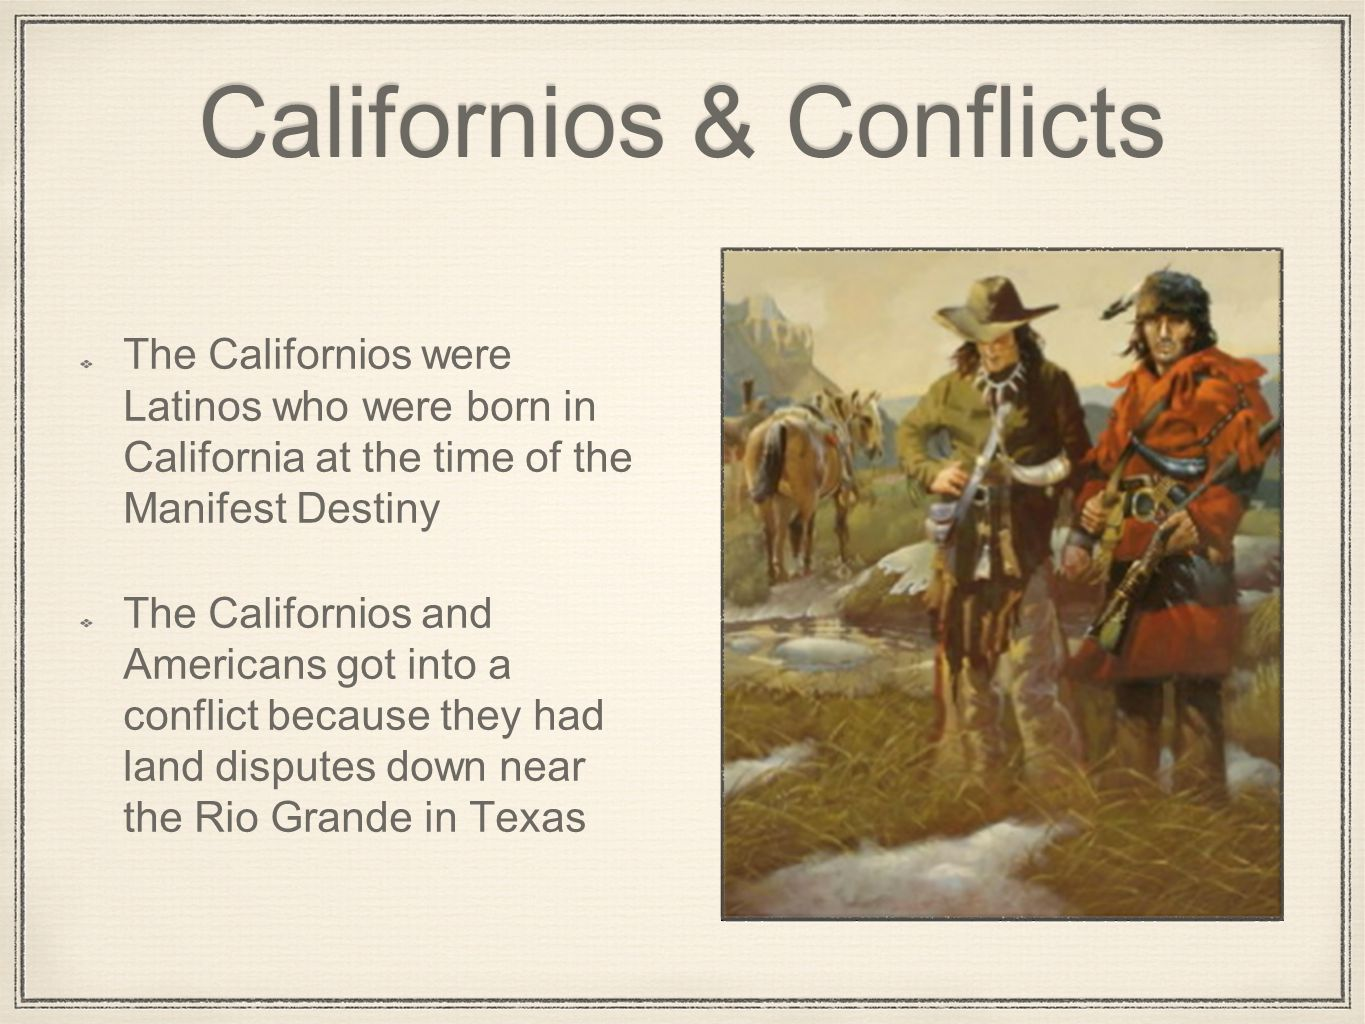 """manifest destiny and the mexican war America went to war to gain territory from mexico and expand the nation's boundary  journalist john l o'sullivan, spread the idea of """"manifest destiny"""" writing,."""